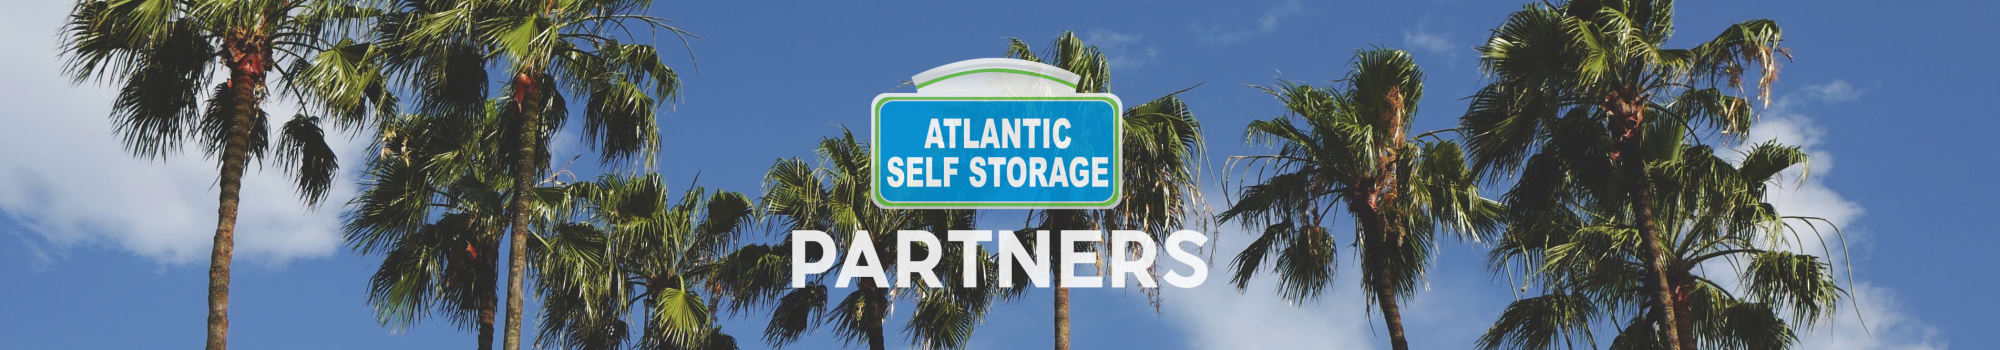 View our partners at Atlantic Self Storage in Jacksonville, FL